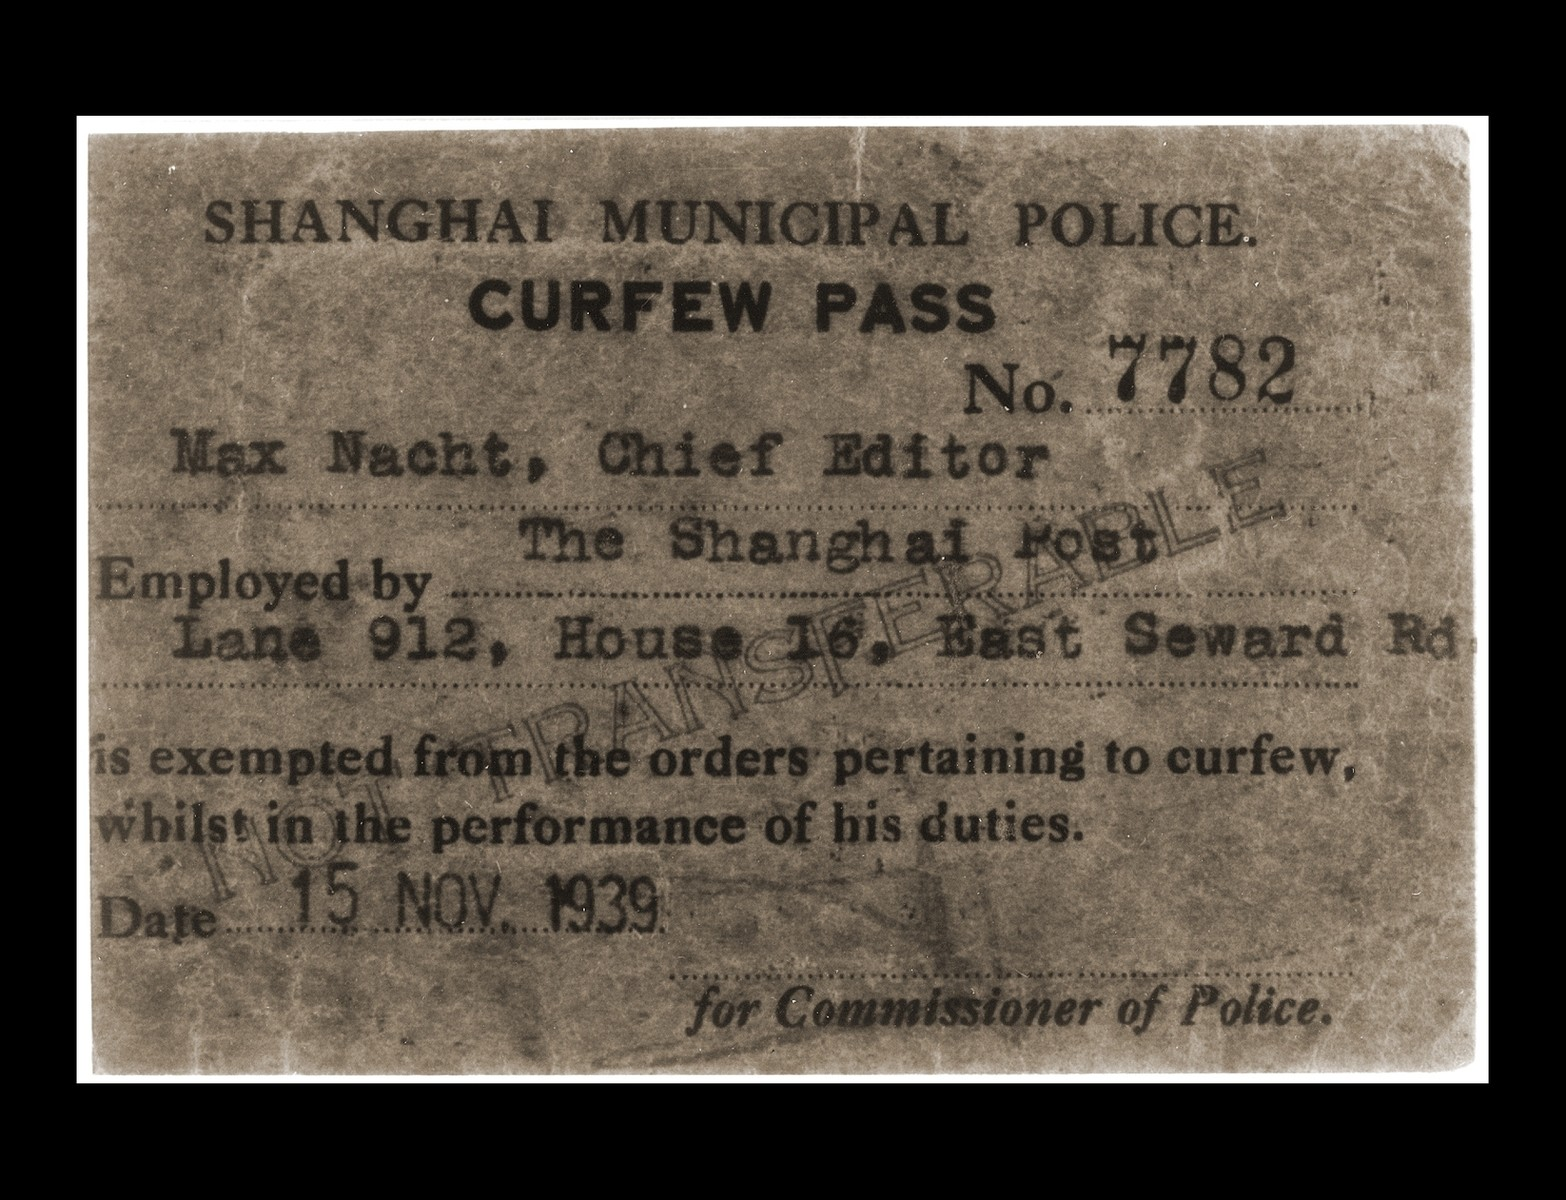 A pass issued to Felix Nacht, the chief editor of the Shanghai Post refugee newspaper, exempting him from curfew regulations while performing his job.